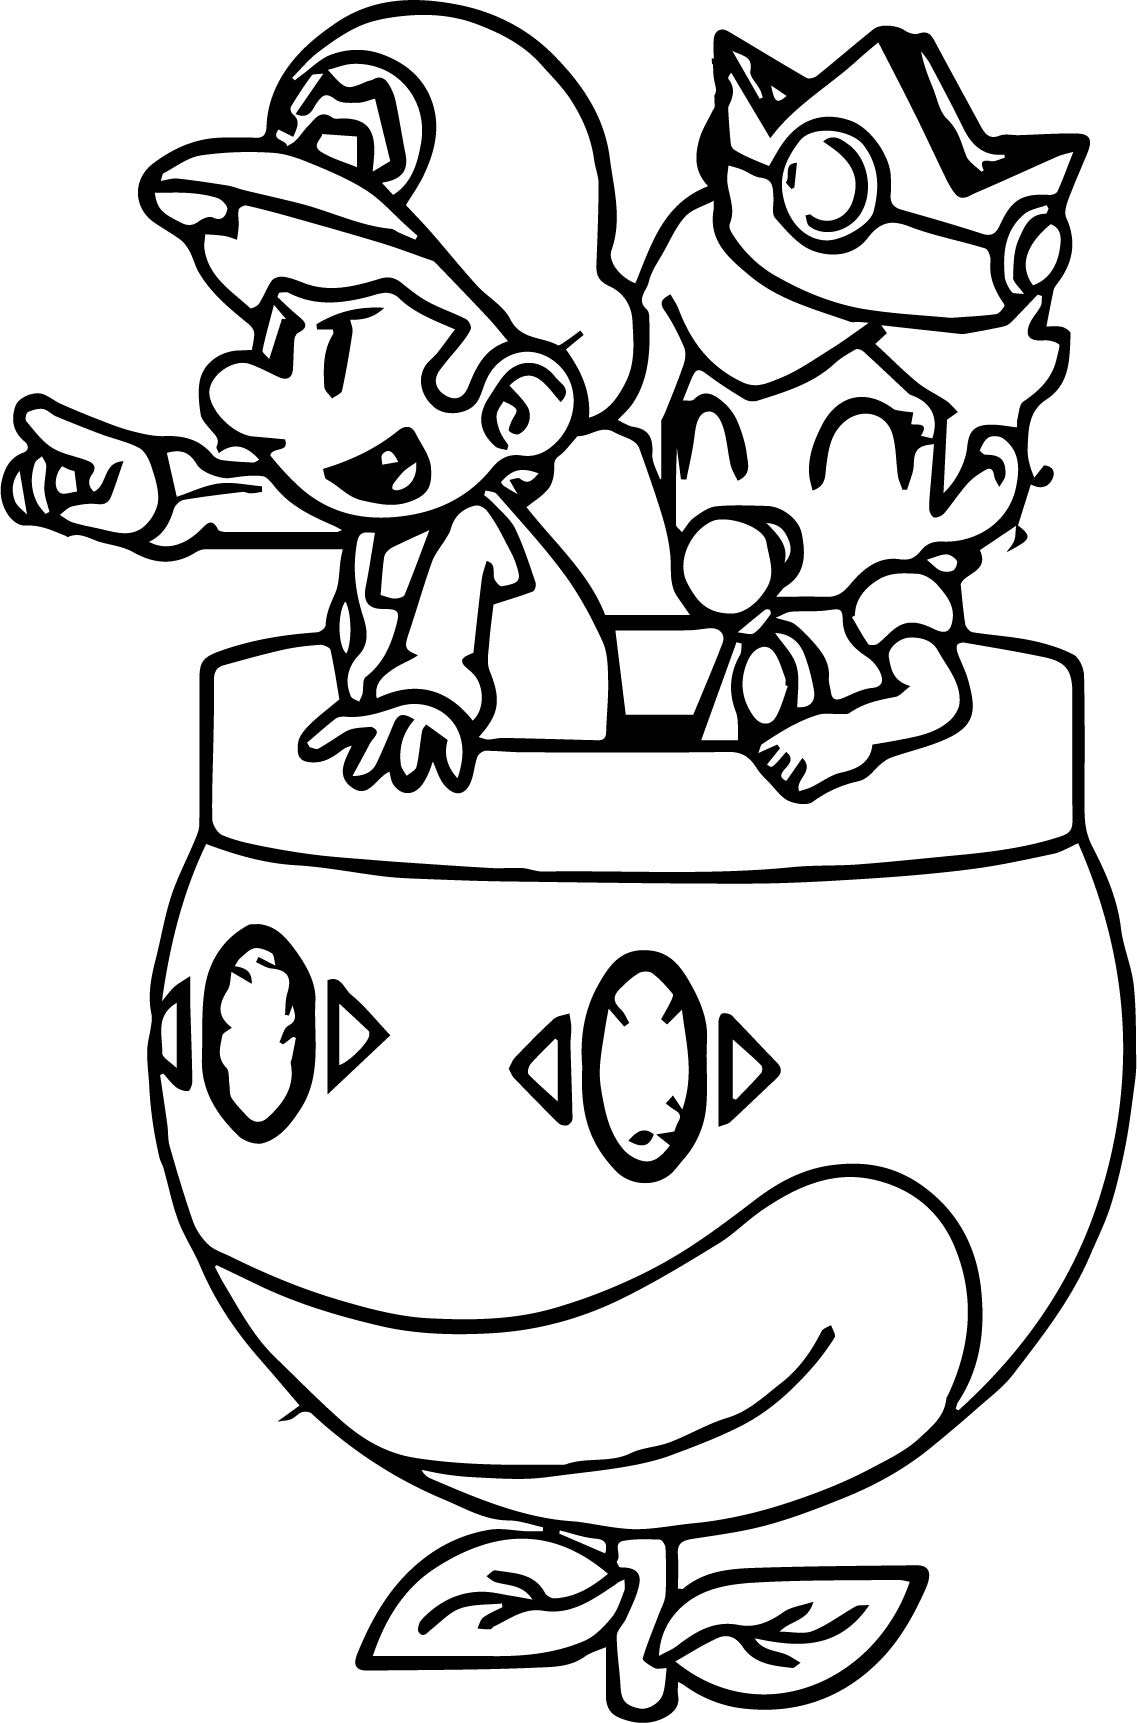 Daisy and mario go coloring page for Daisy coloring page